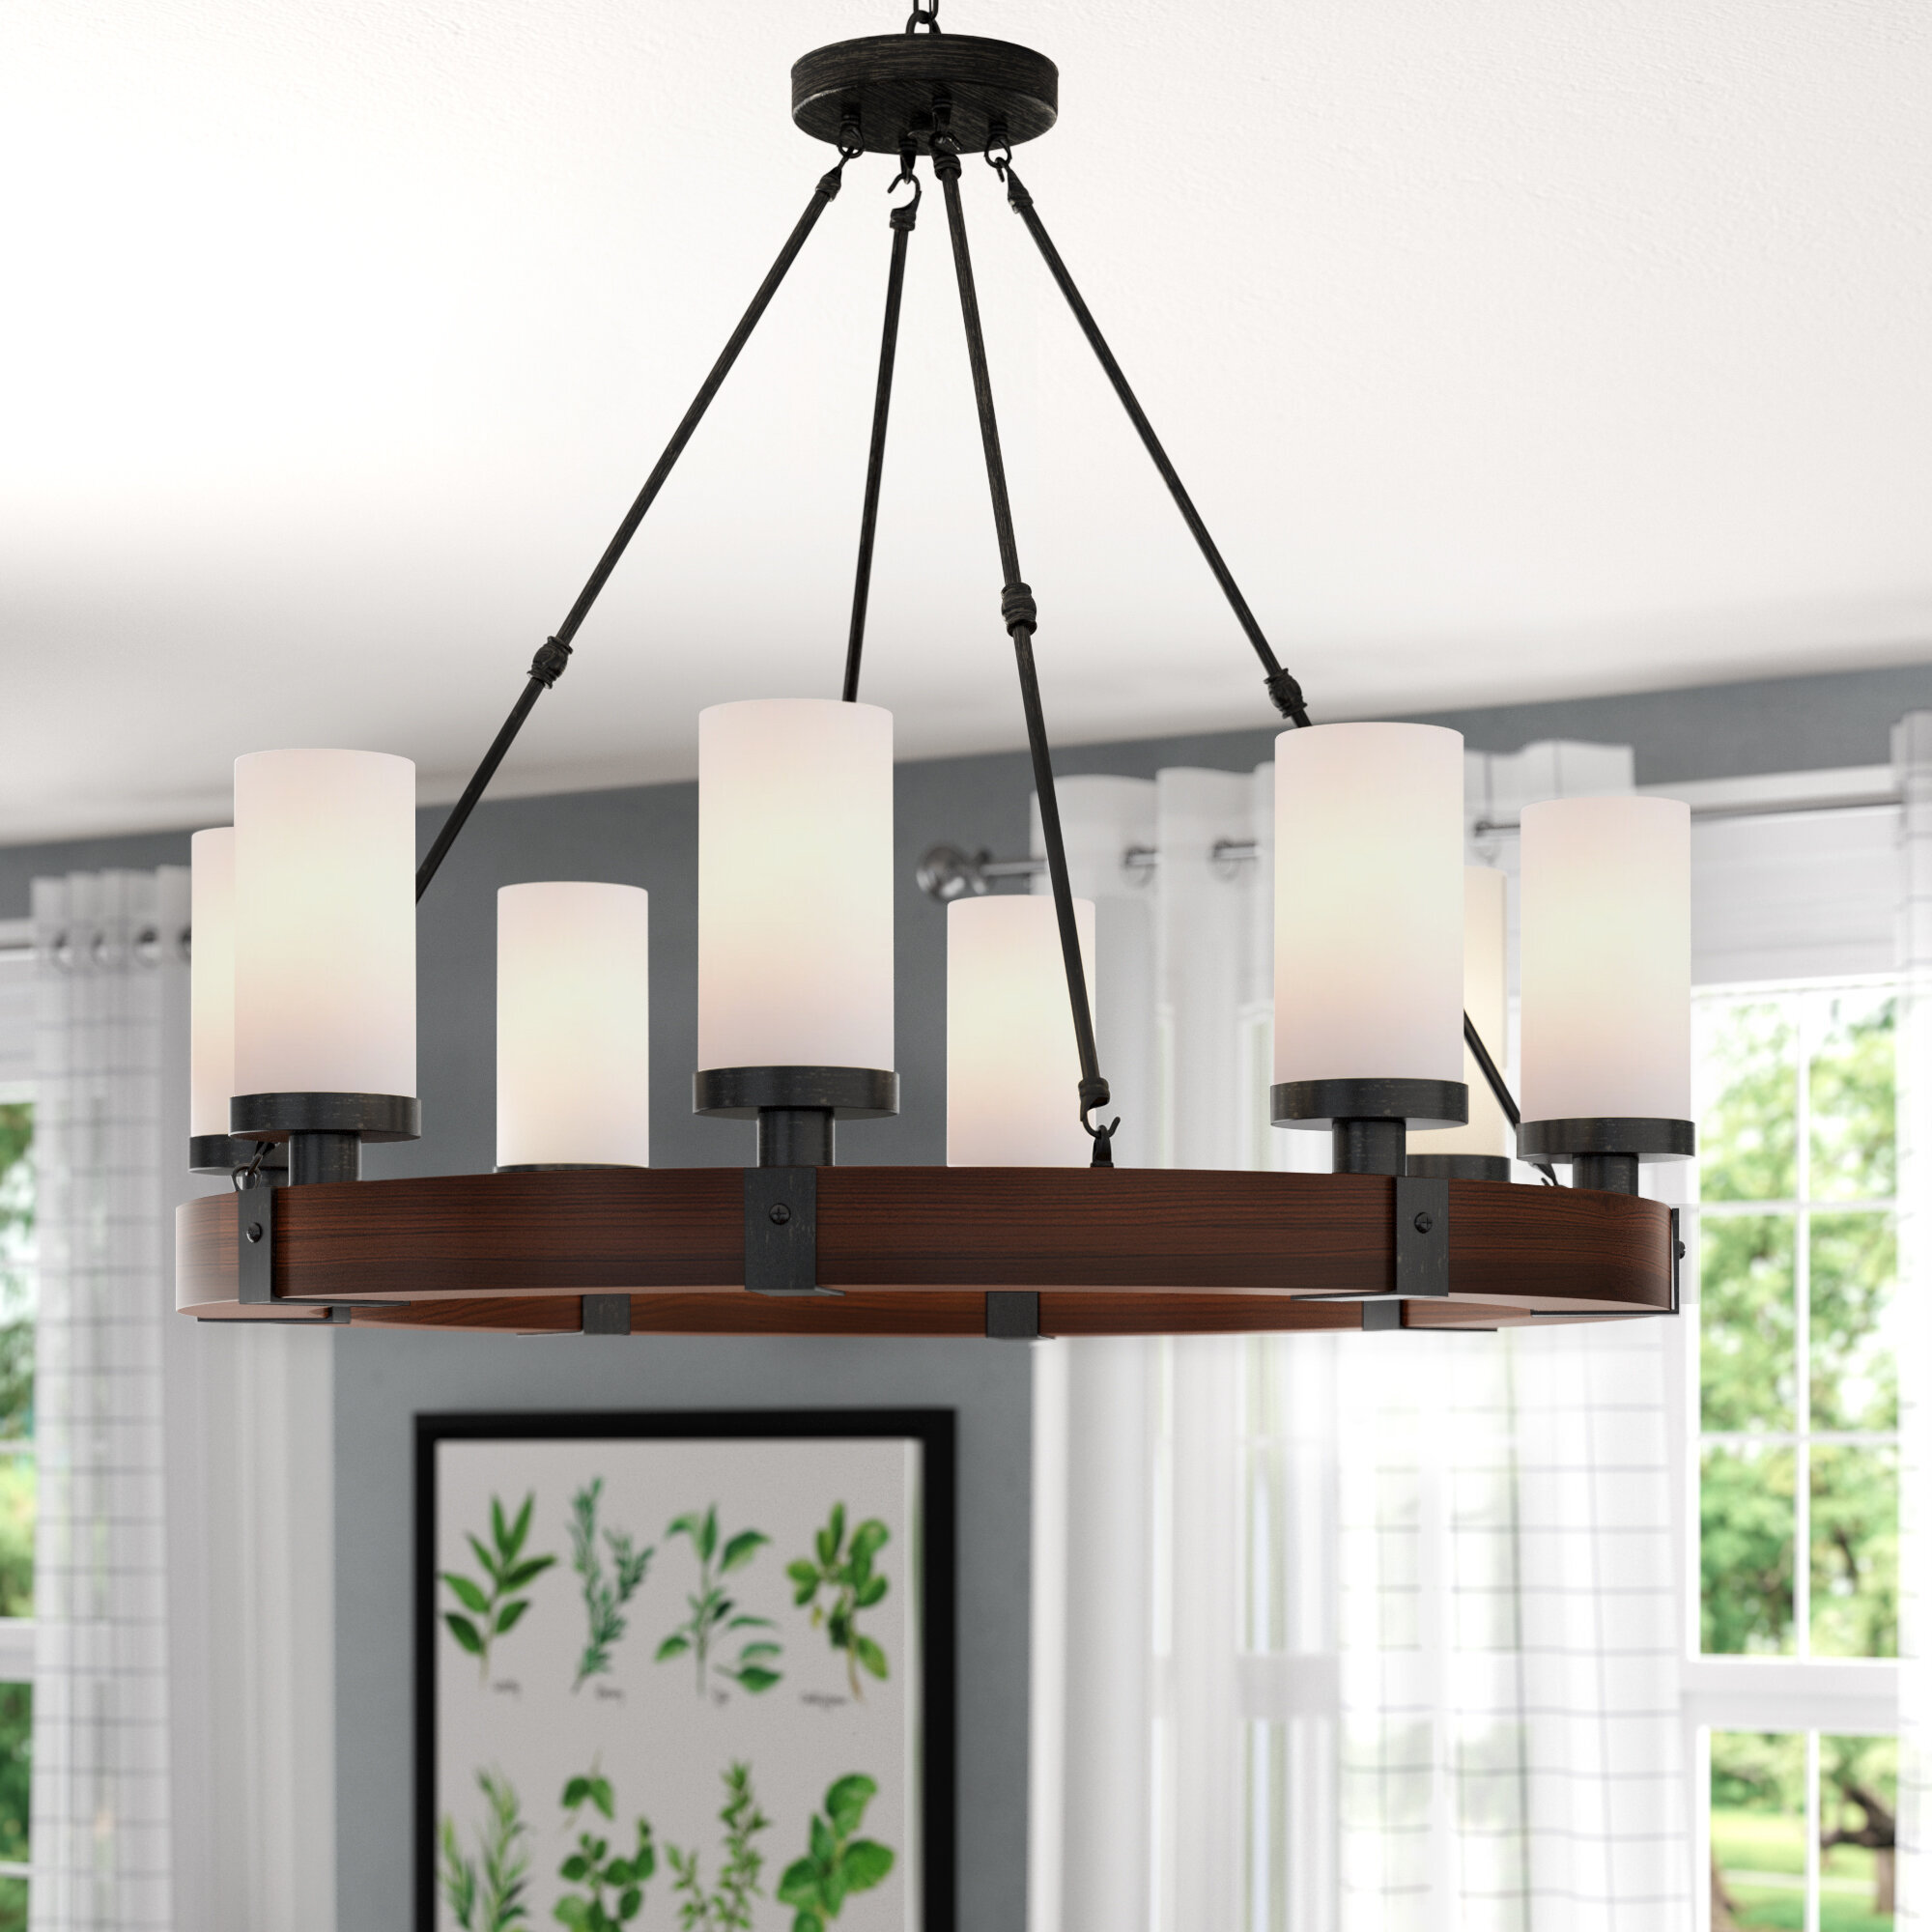 Gracie Oaks Goodale 8 Light Unique Statement Wagon Wheel Chandelier Reviews Wayfair